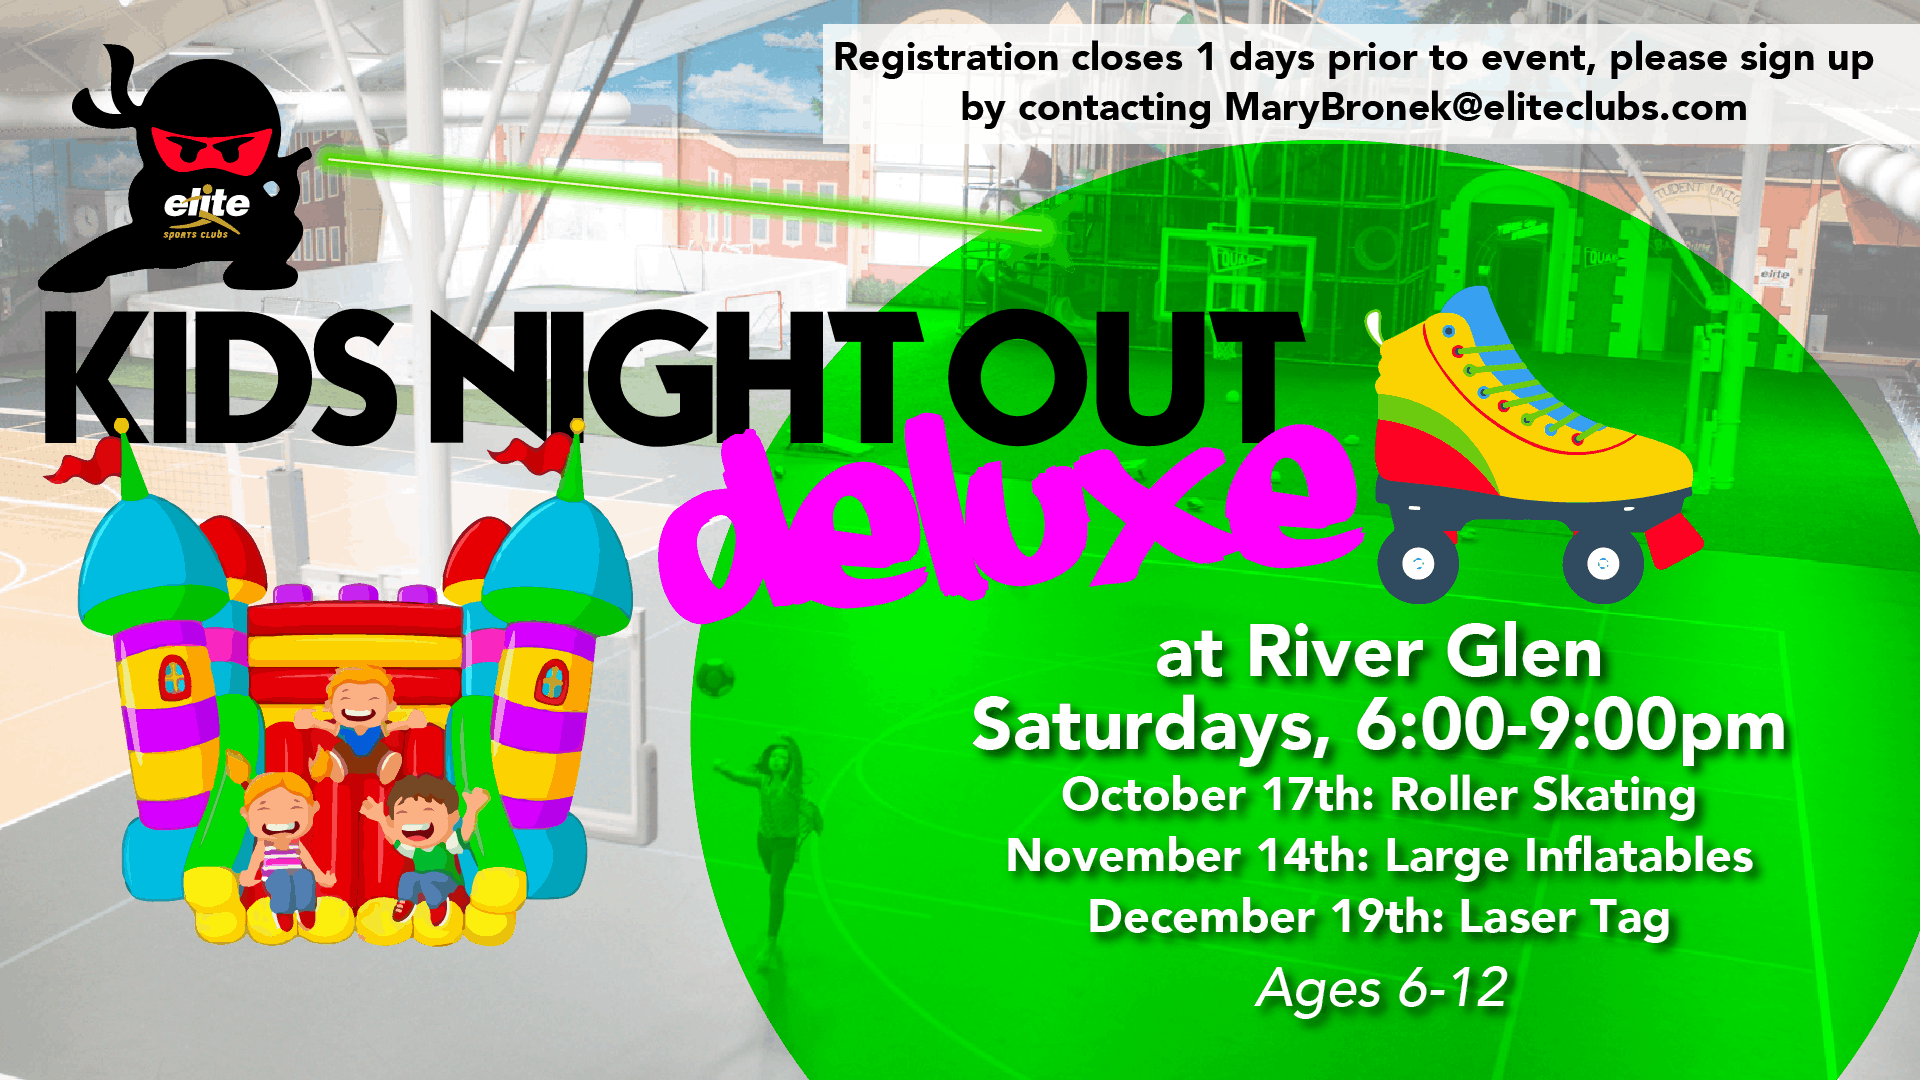 Kids Night Out Deluxe - Elite River Glen - Fall 2020